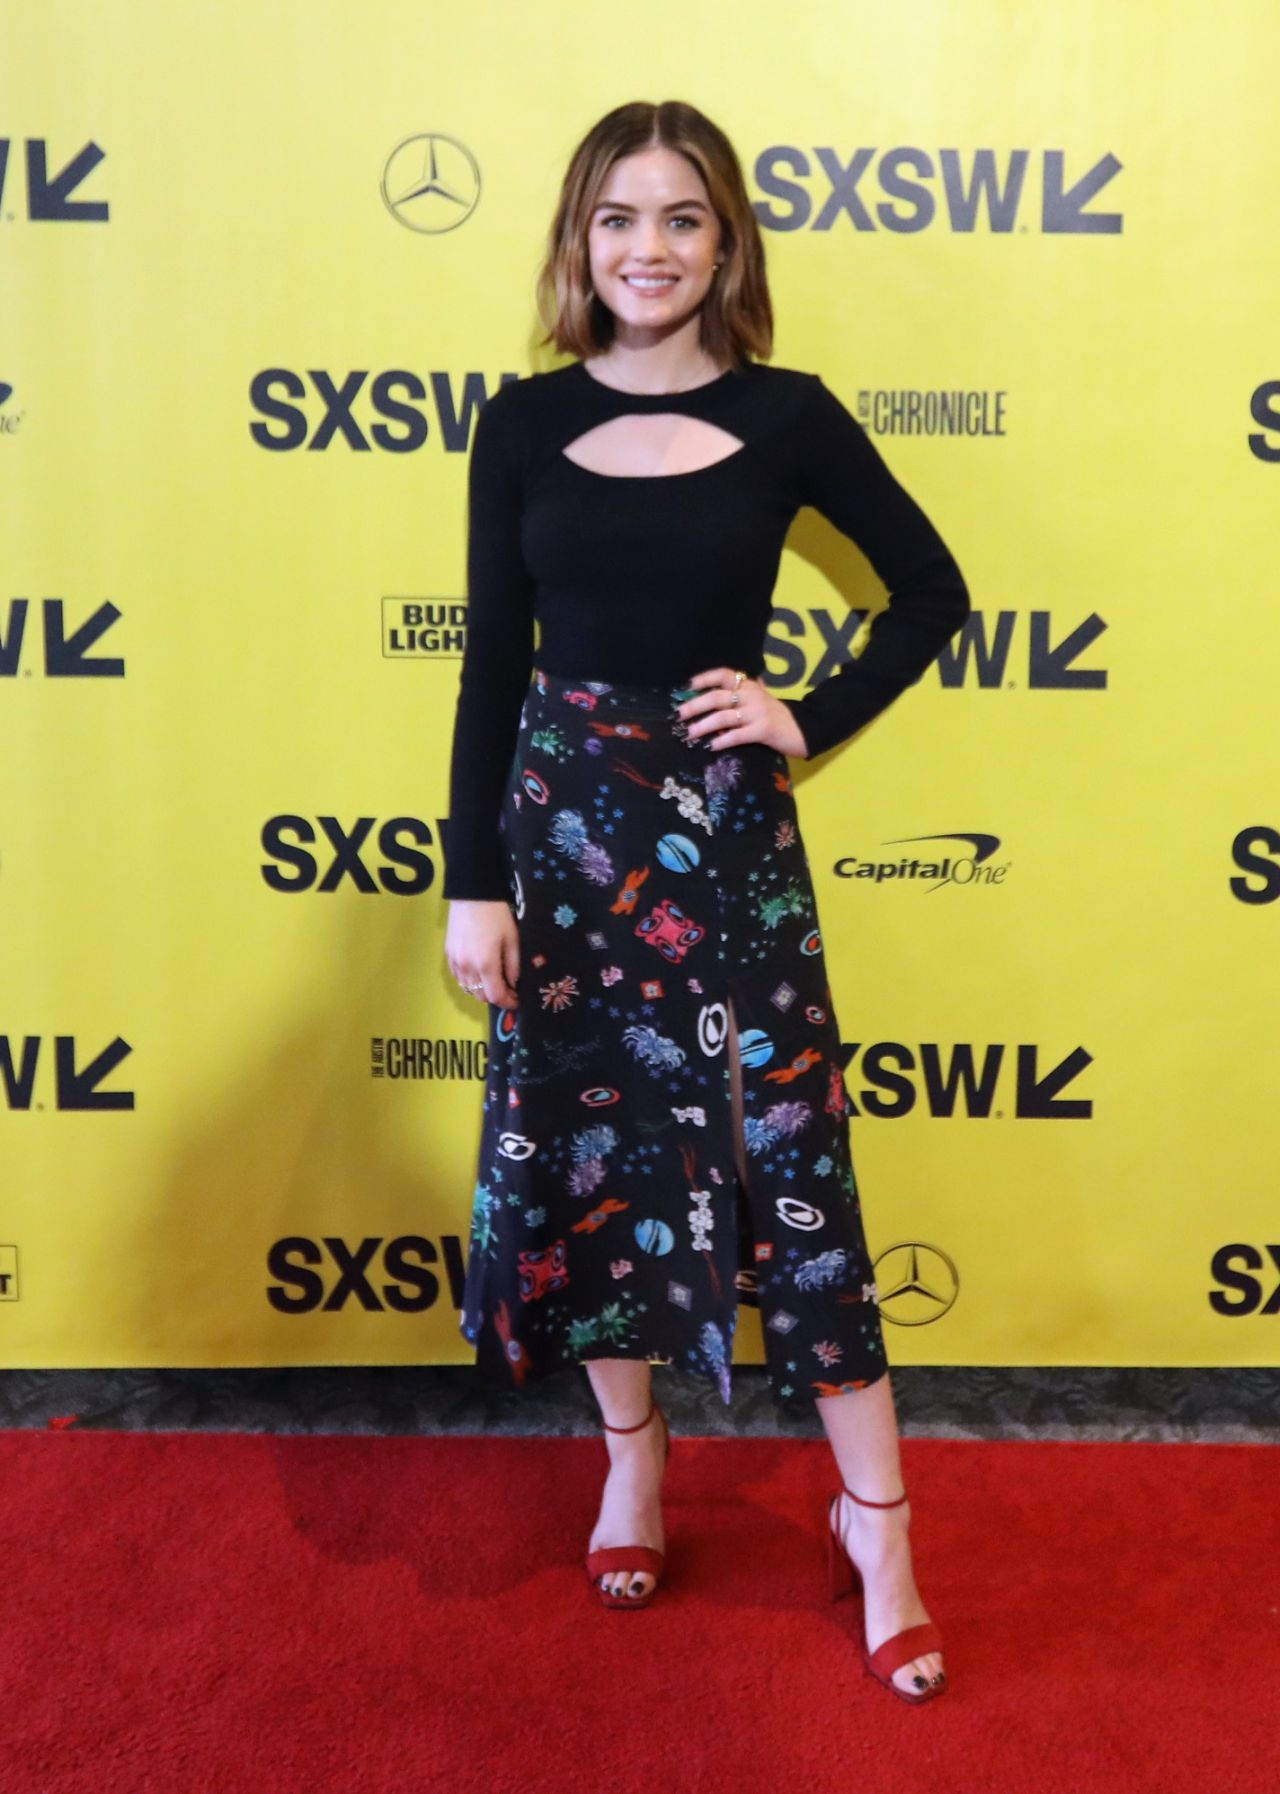 http://celebmafia.com/wp-content/uploads/2018/03/lucy-hale-the-unicorn-premiere-at-2018-sxsw-festival-in-austin-0.jpg